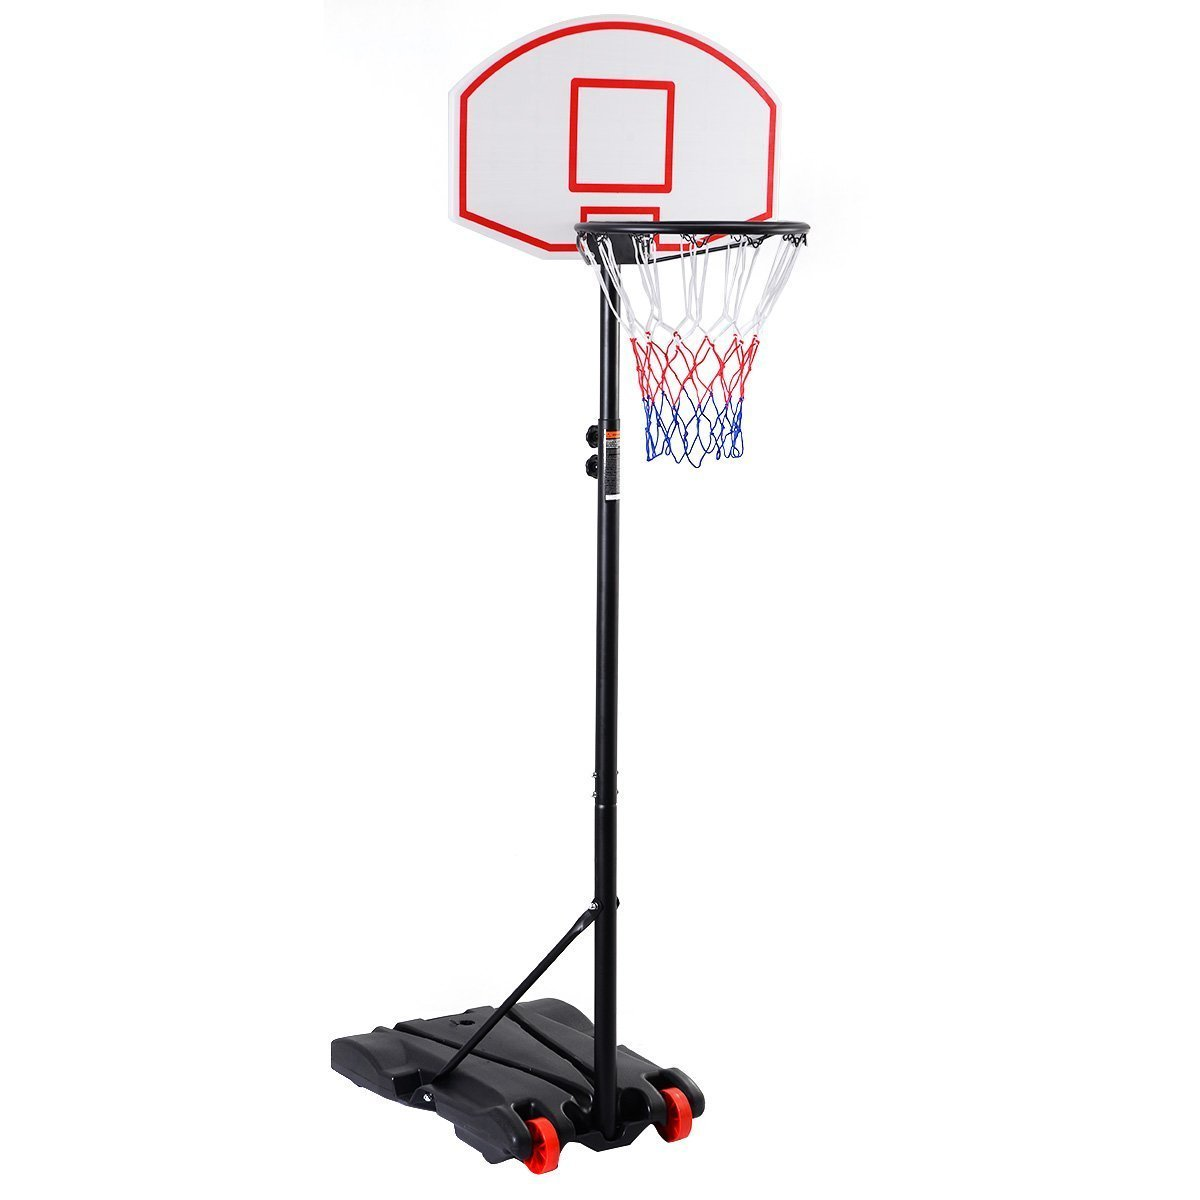 Amazon.com   Giantex Adjustable Basketball Hoop System Stand Kid Indoor  Outdoor Net Goal w Wheels (Black White)   Sports   Outdoors e01f020a83